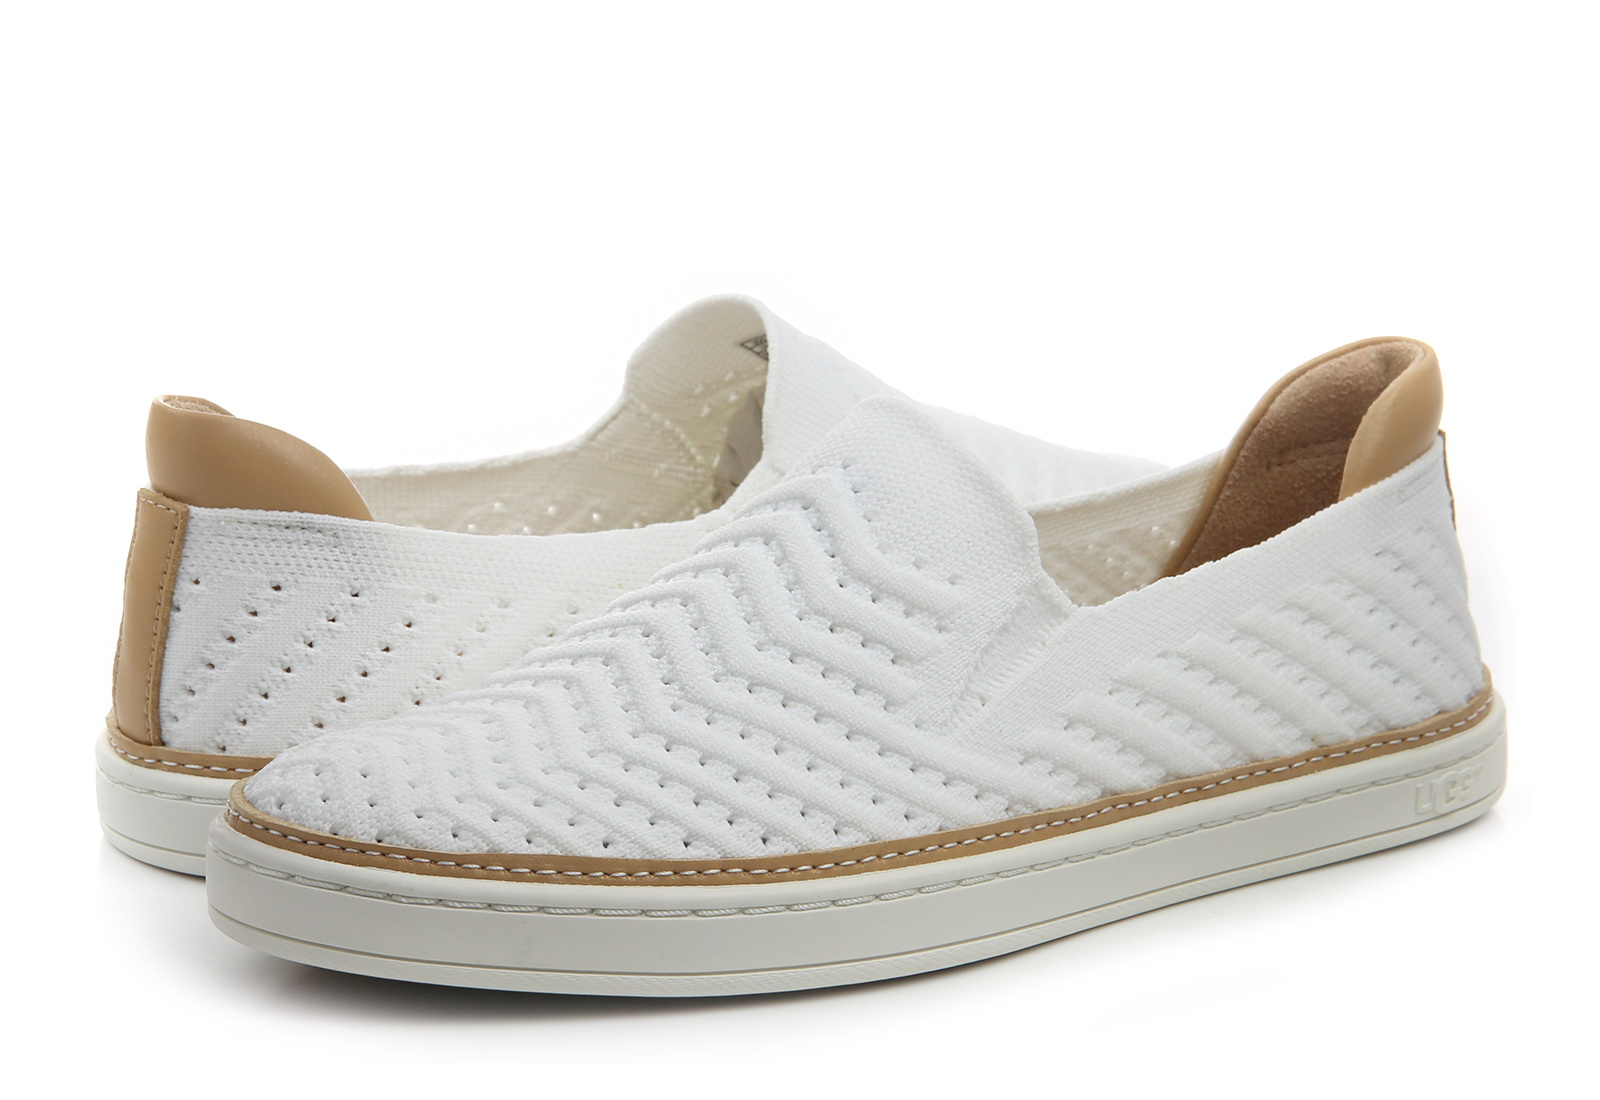 40a2efbcfd4 Ugg Shoes - Sammy Chevron - 1102560-wht - Online shop for sneakers, shoes  and boots